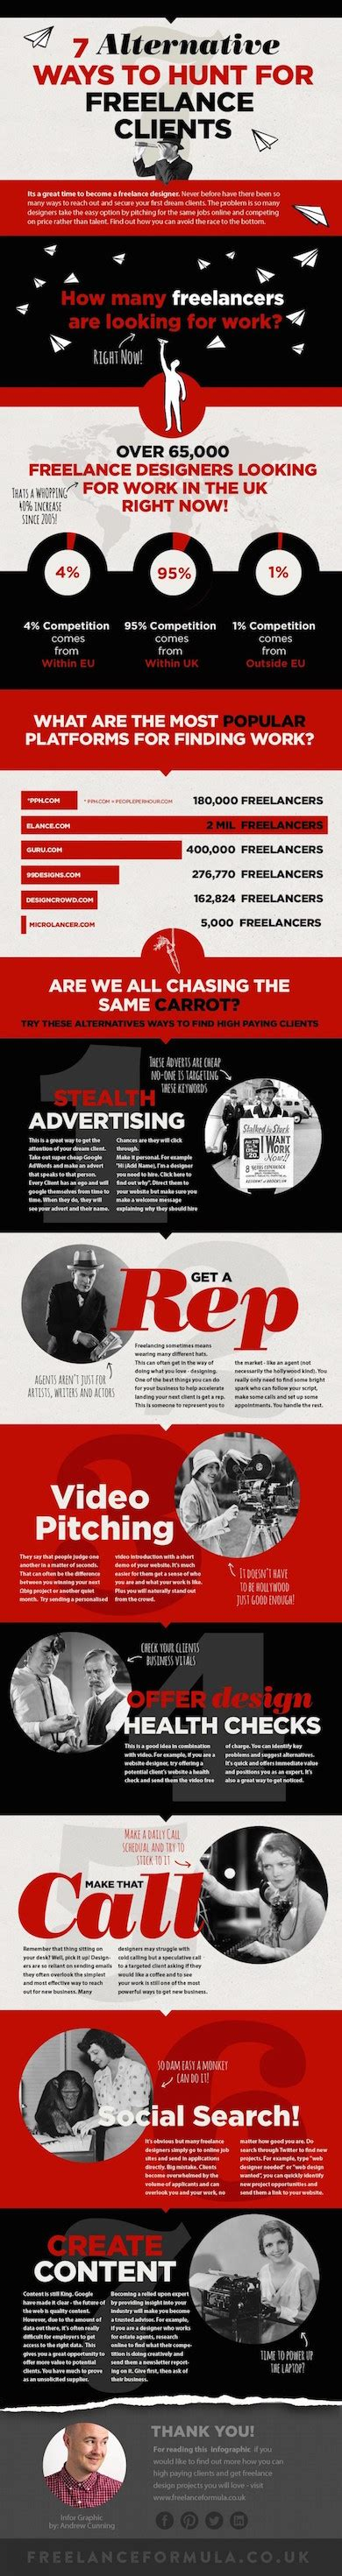 top 5 reasons to adopt responsive web design in 2014 creative infographics for designers and developers neo